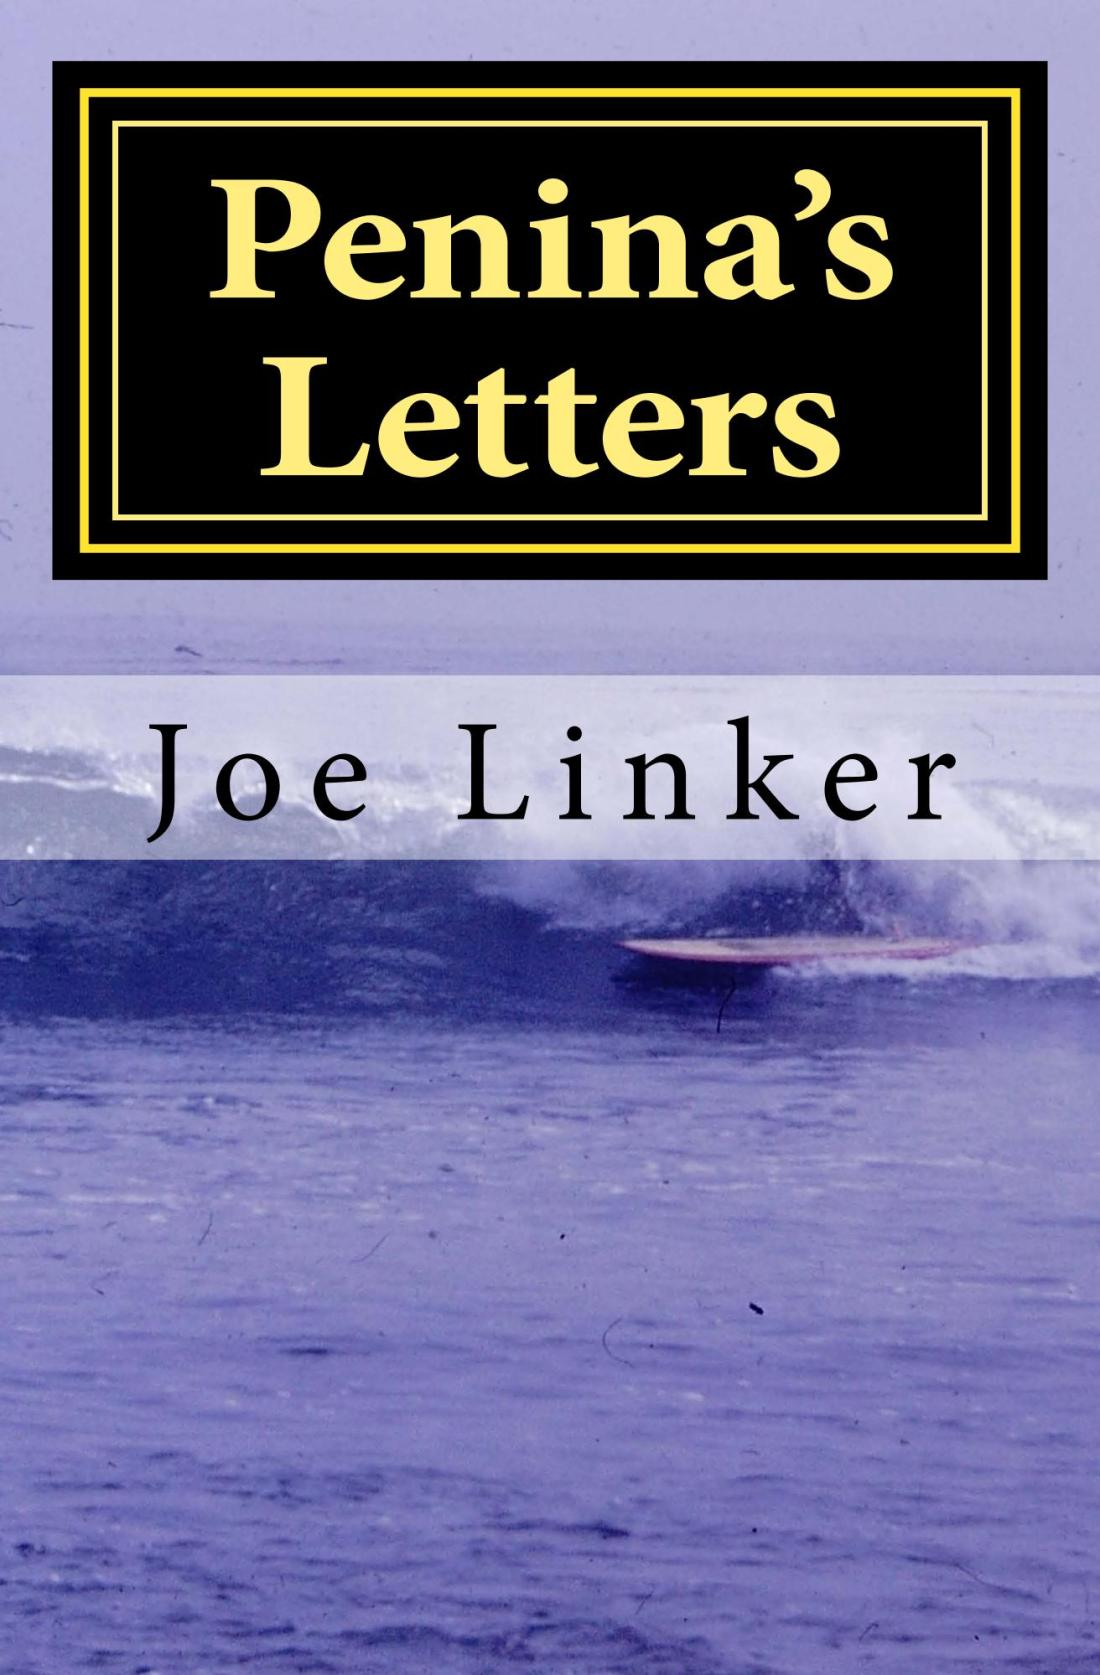 Peninas_Letters_Cover_for_Kindle